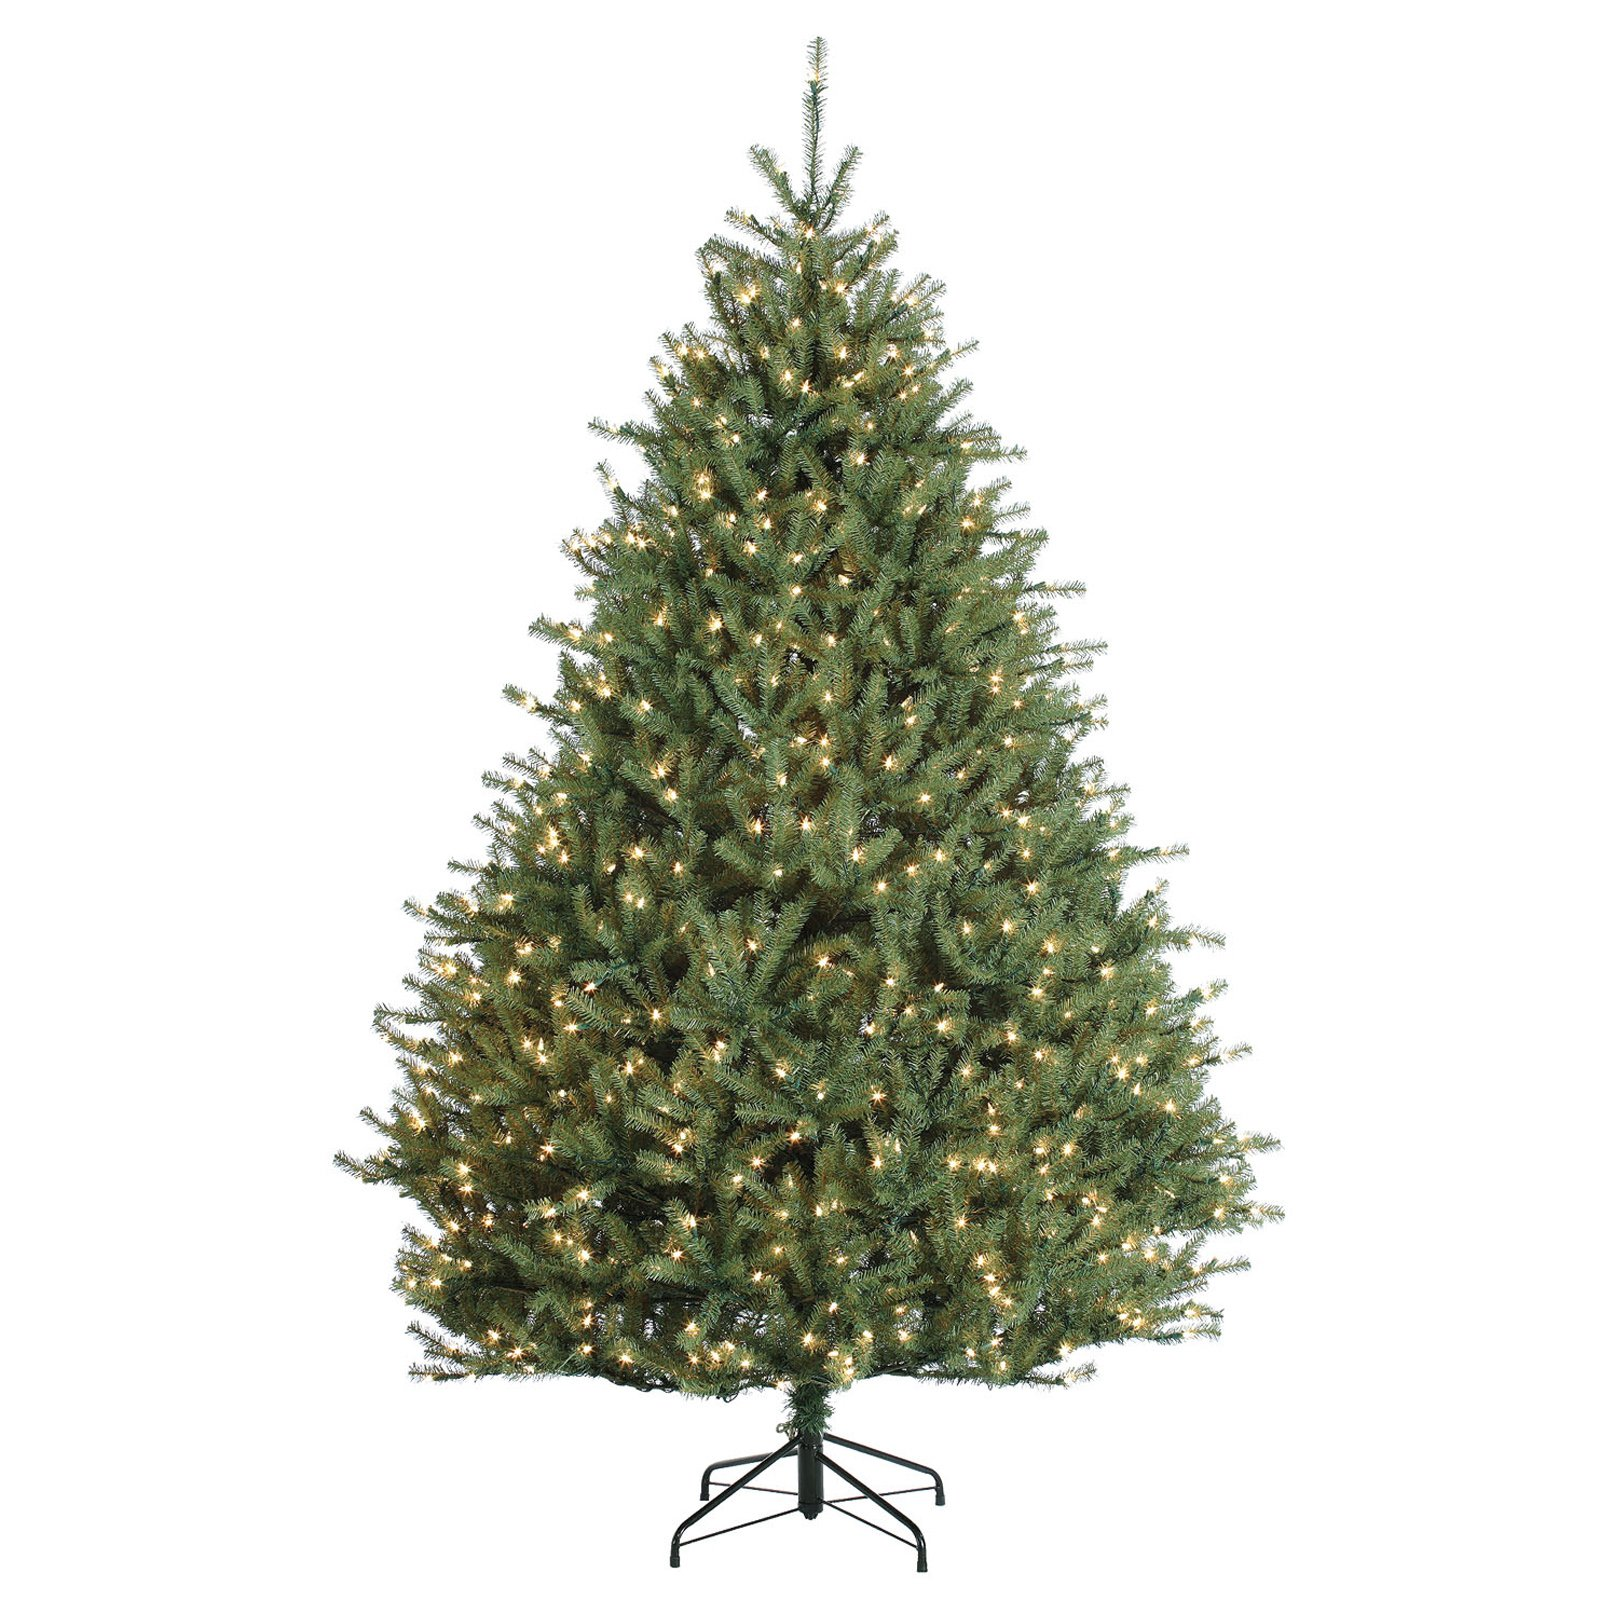 Artificial Christmas Trees Pictures & Photos